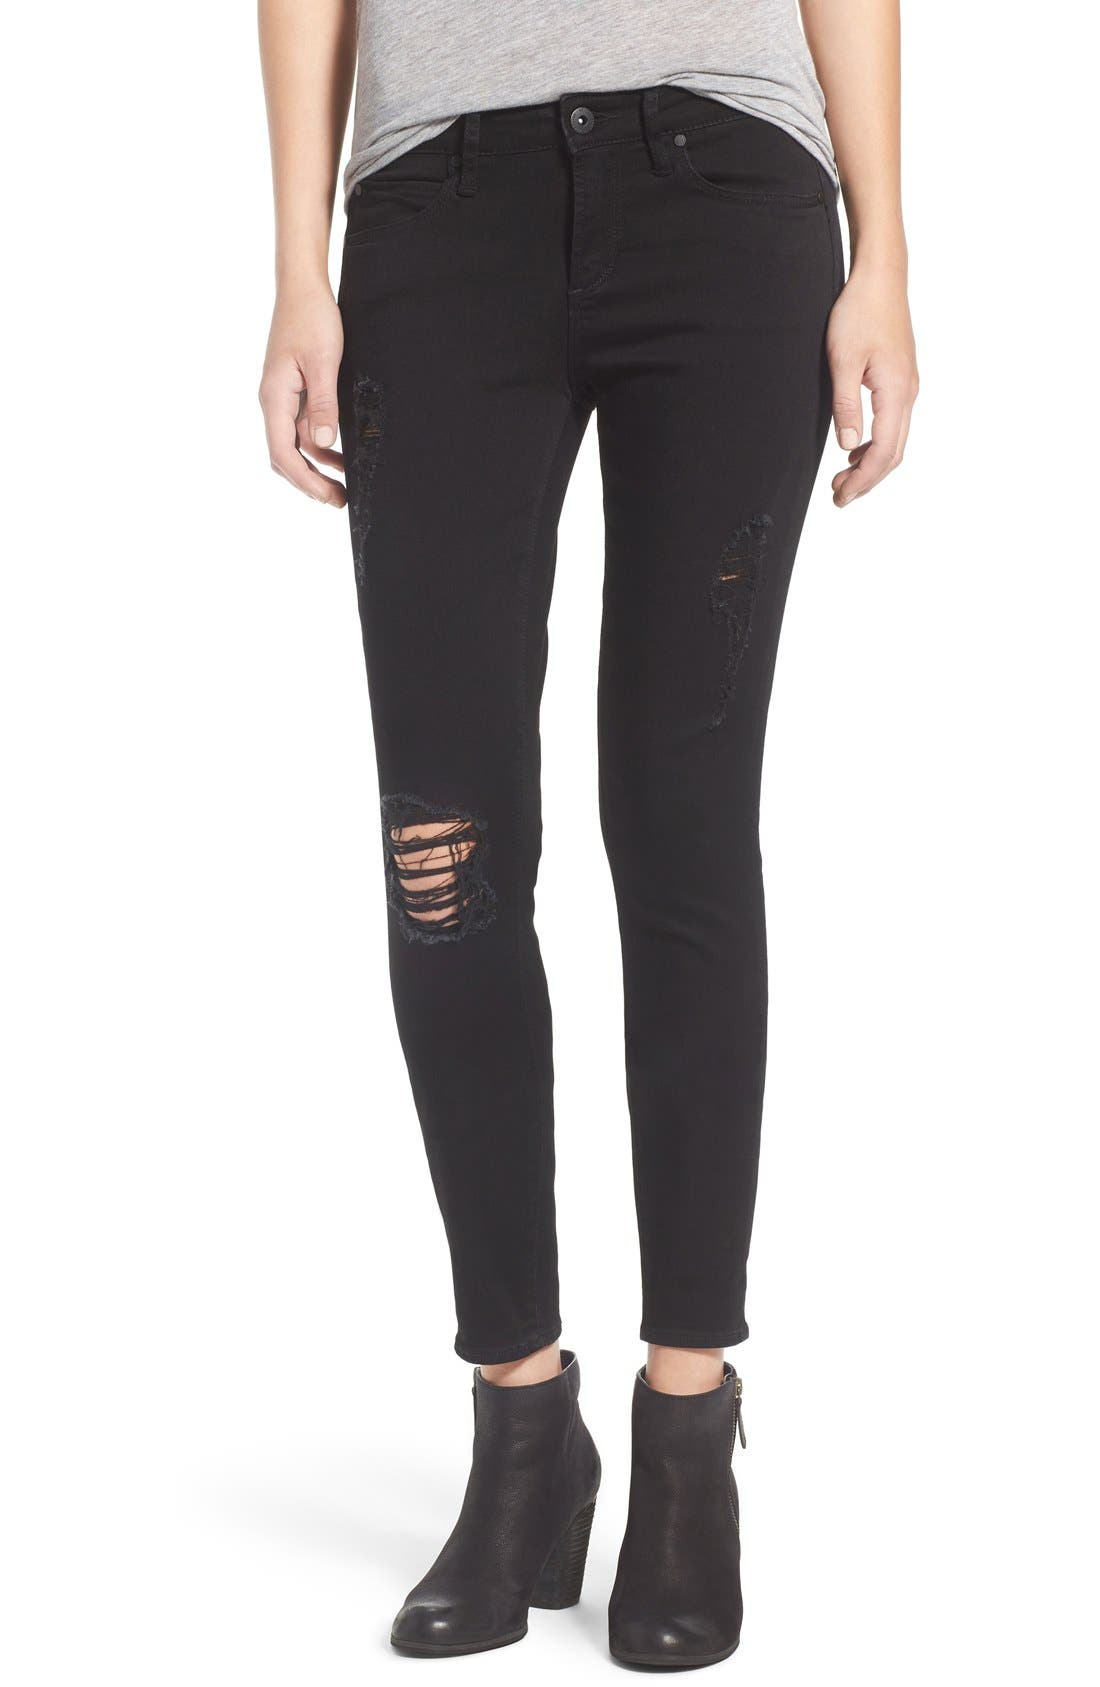 Articles of Society 'Sarah' Skinny Jeans (Black Cast) | Nordstrom